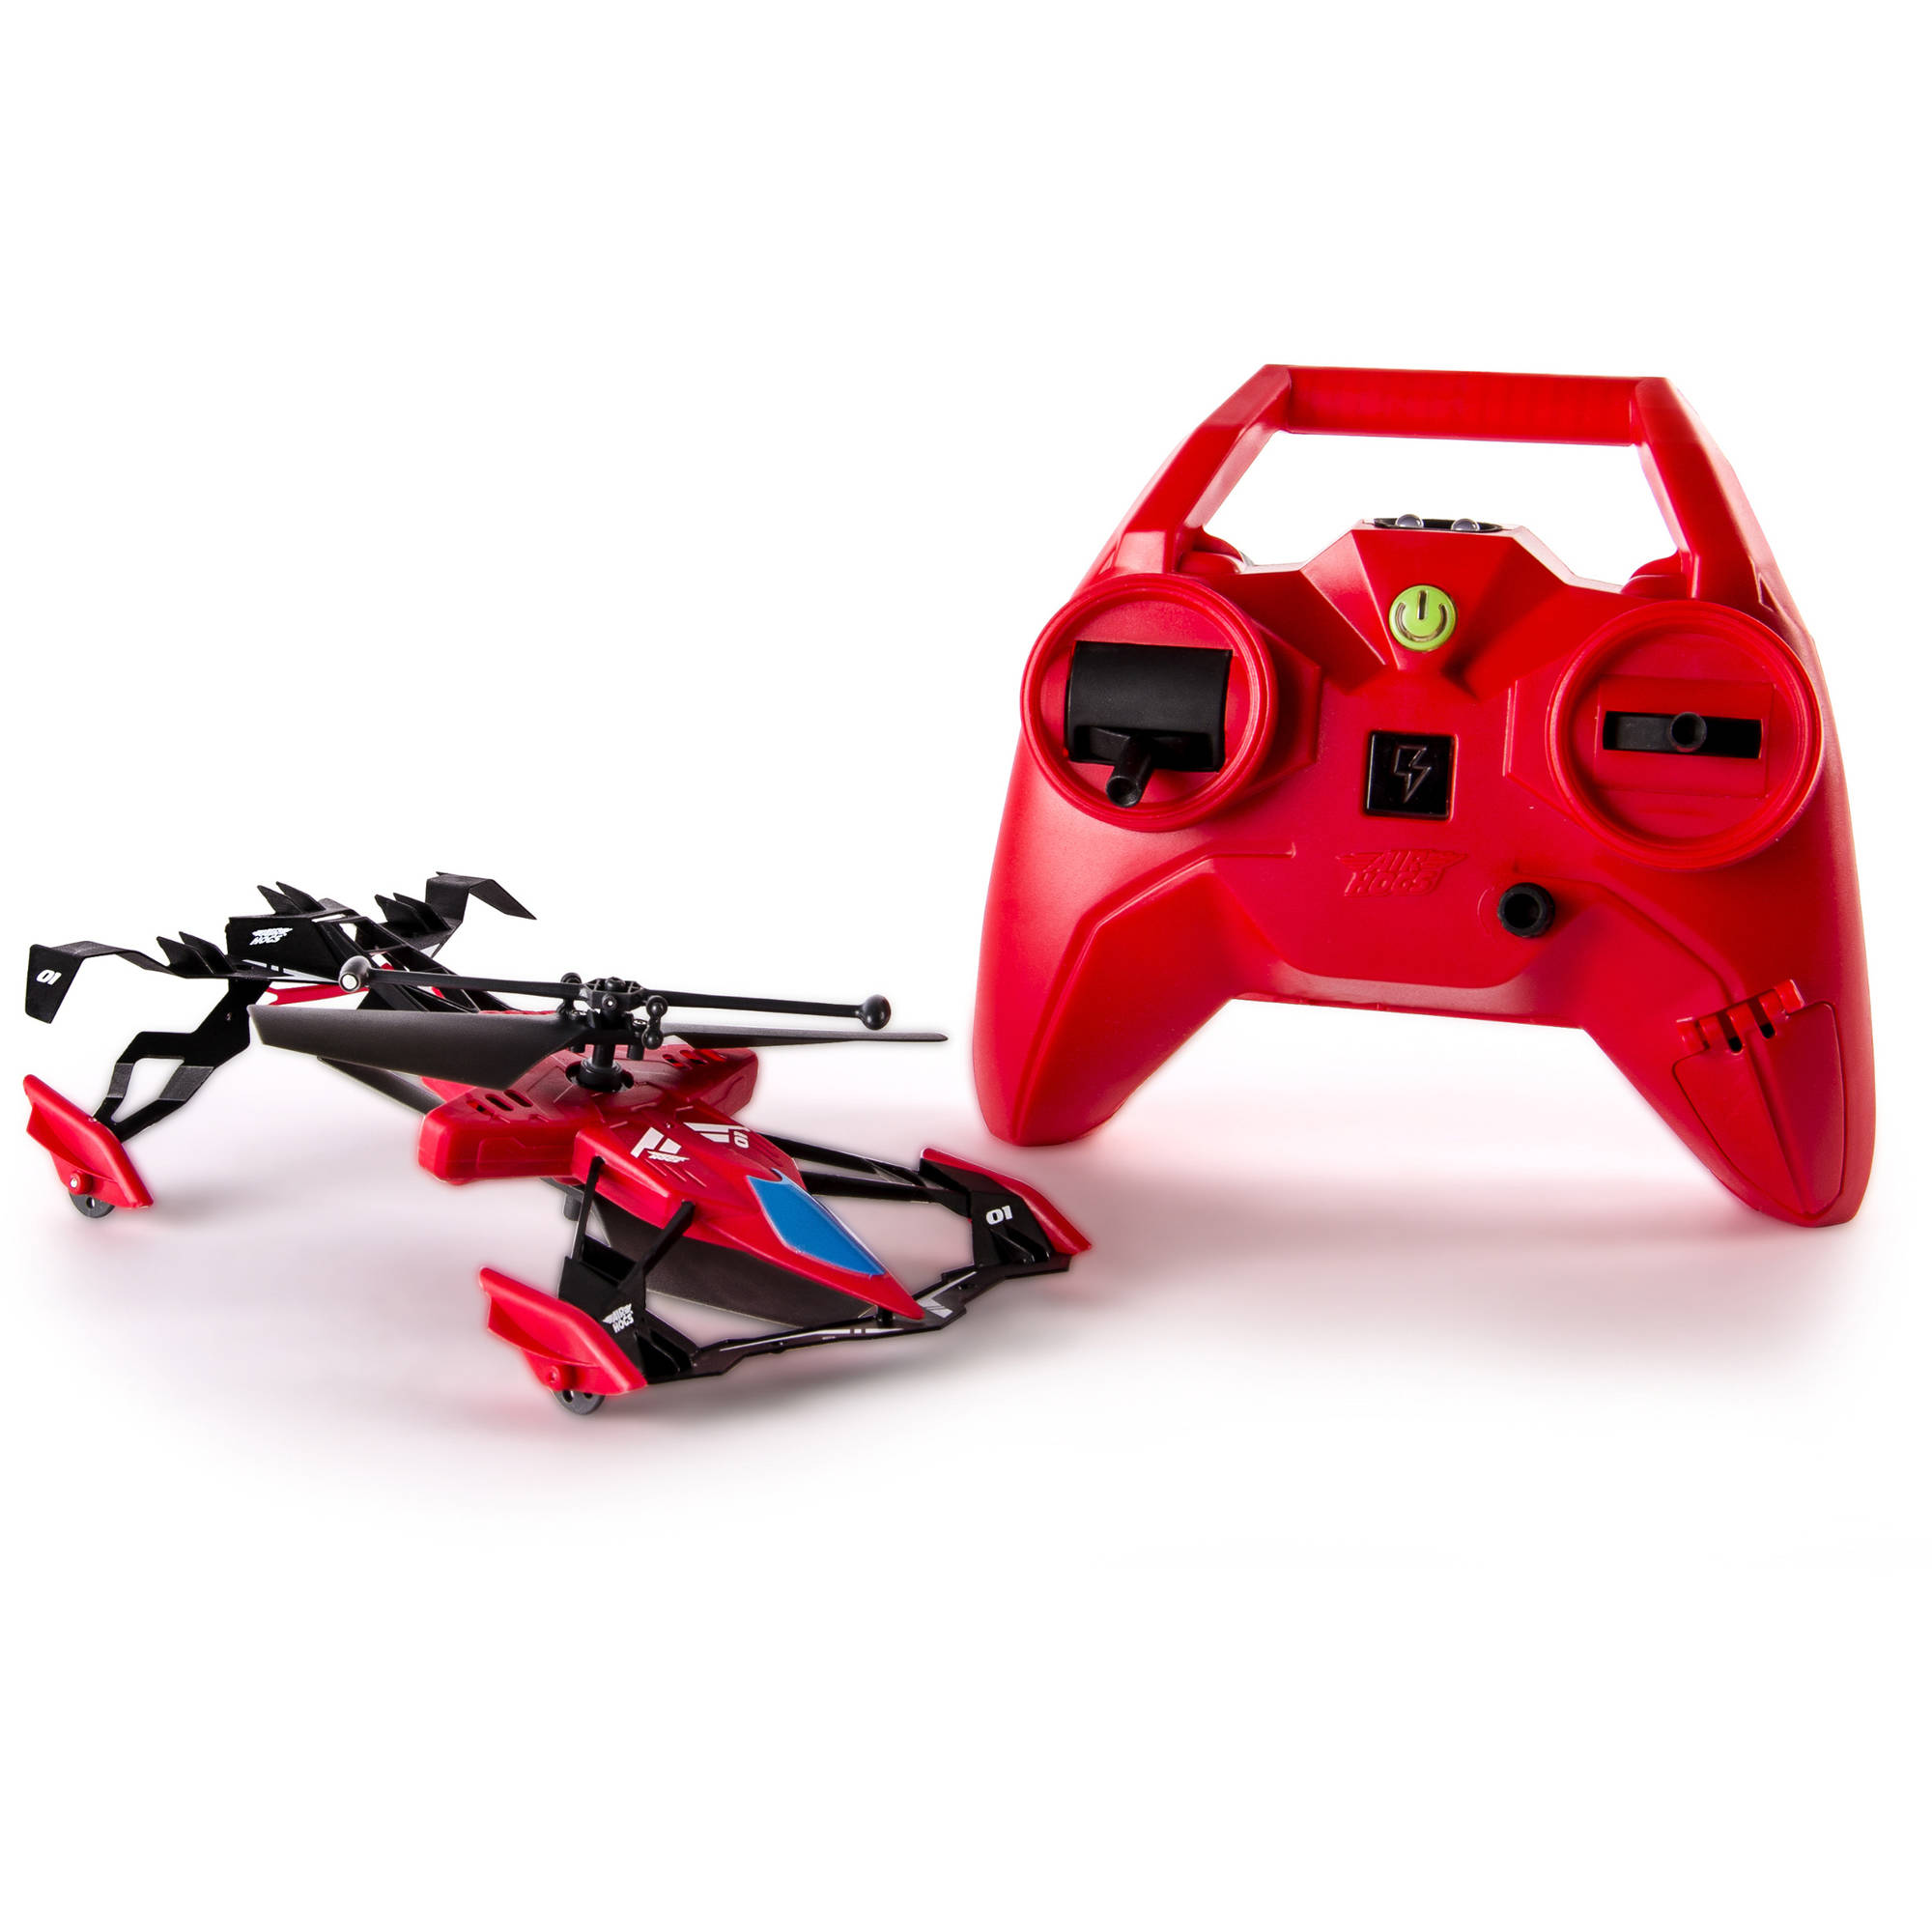 Air Hogs Switchblade Ground and Air Race RC Heli, Red